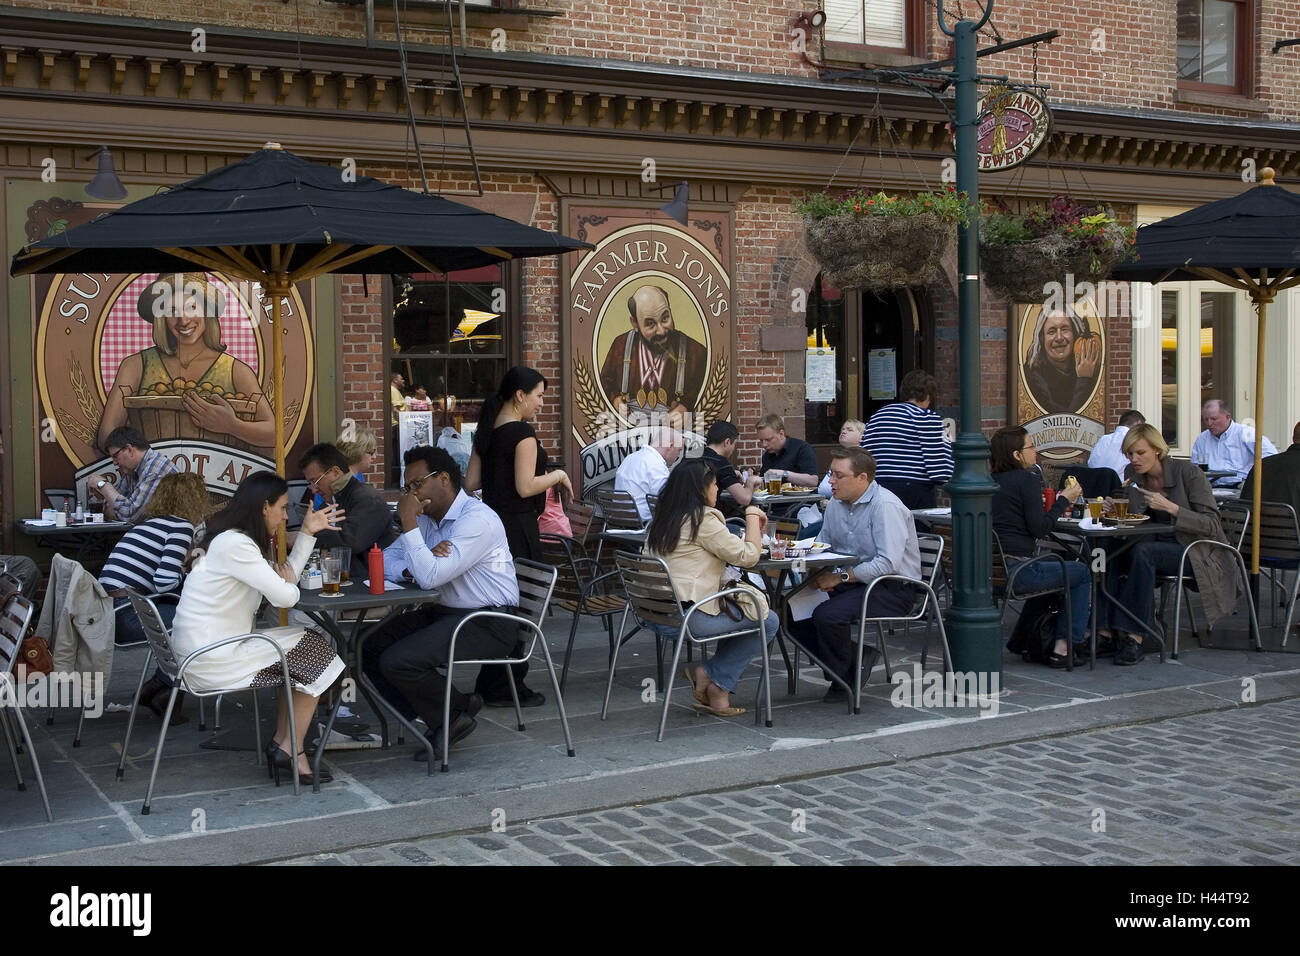 The USA, New York city, restaurant, outside, guests, North America, bar, gastronomy, tables, sit, lunches, lunch - Stock Image